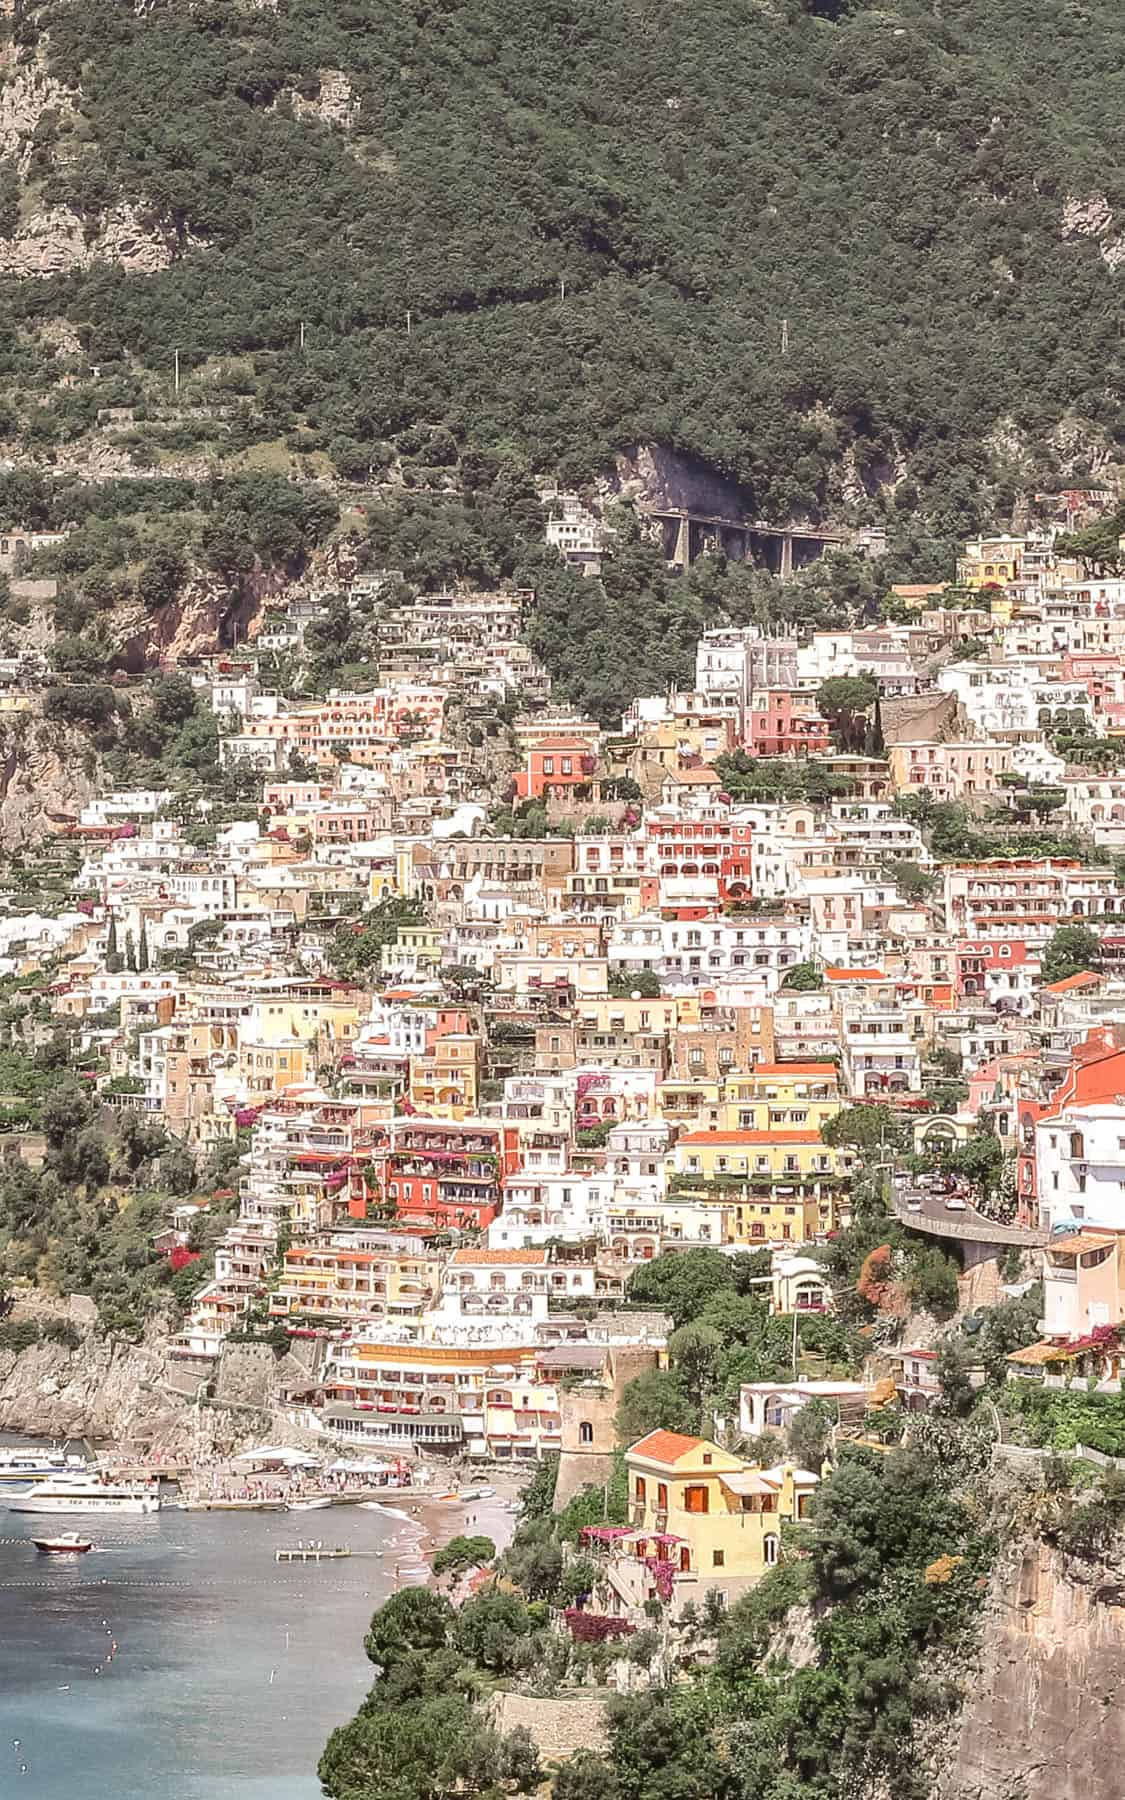 https://www.fashionedible.com/how-to-vacation-avoid-the-crowds-in-positano/